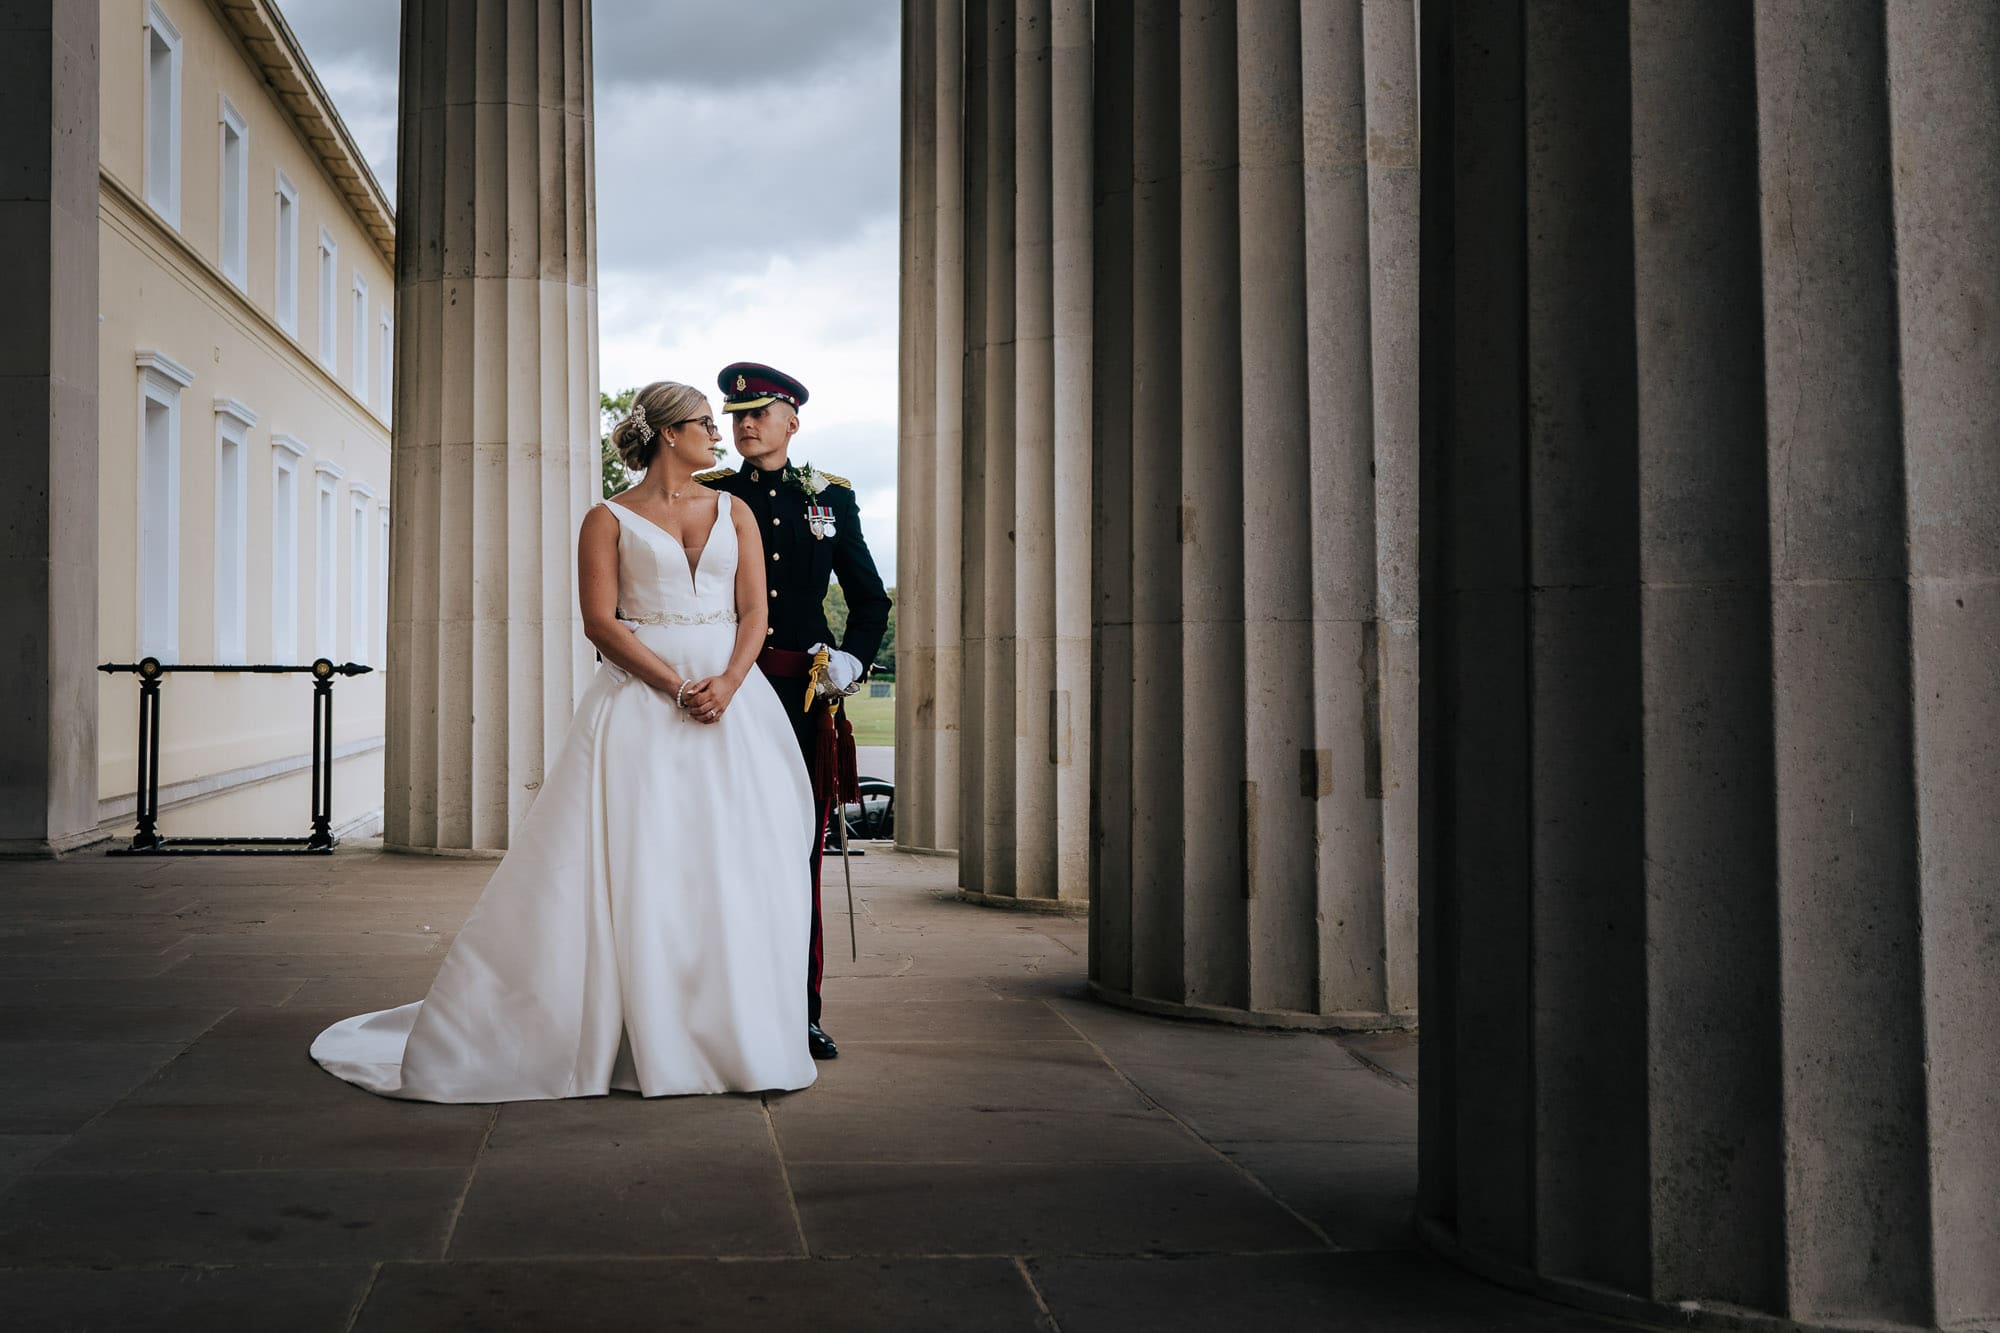 military wedding photographer captures Bride and groom on old college steps RMAS